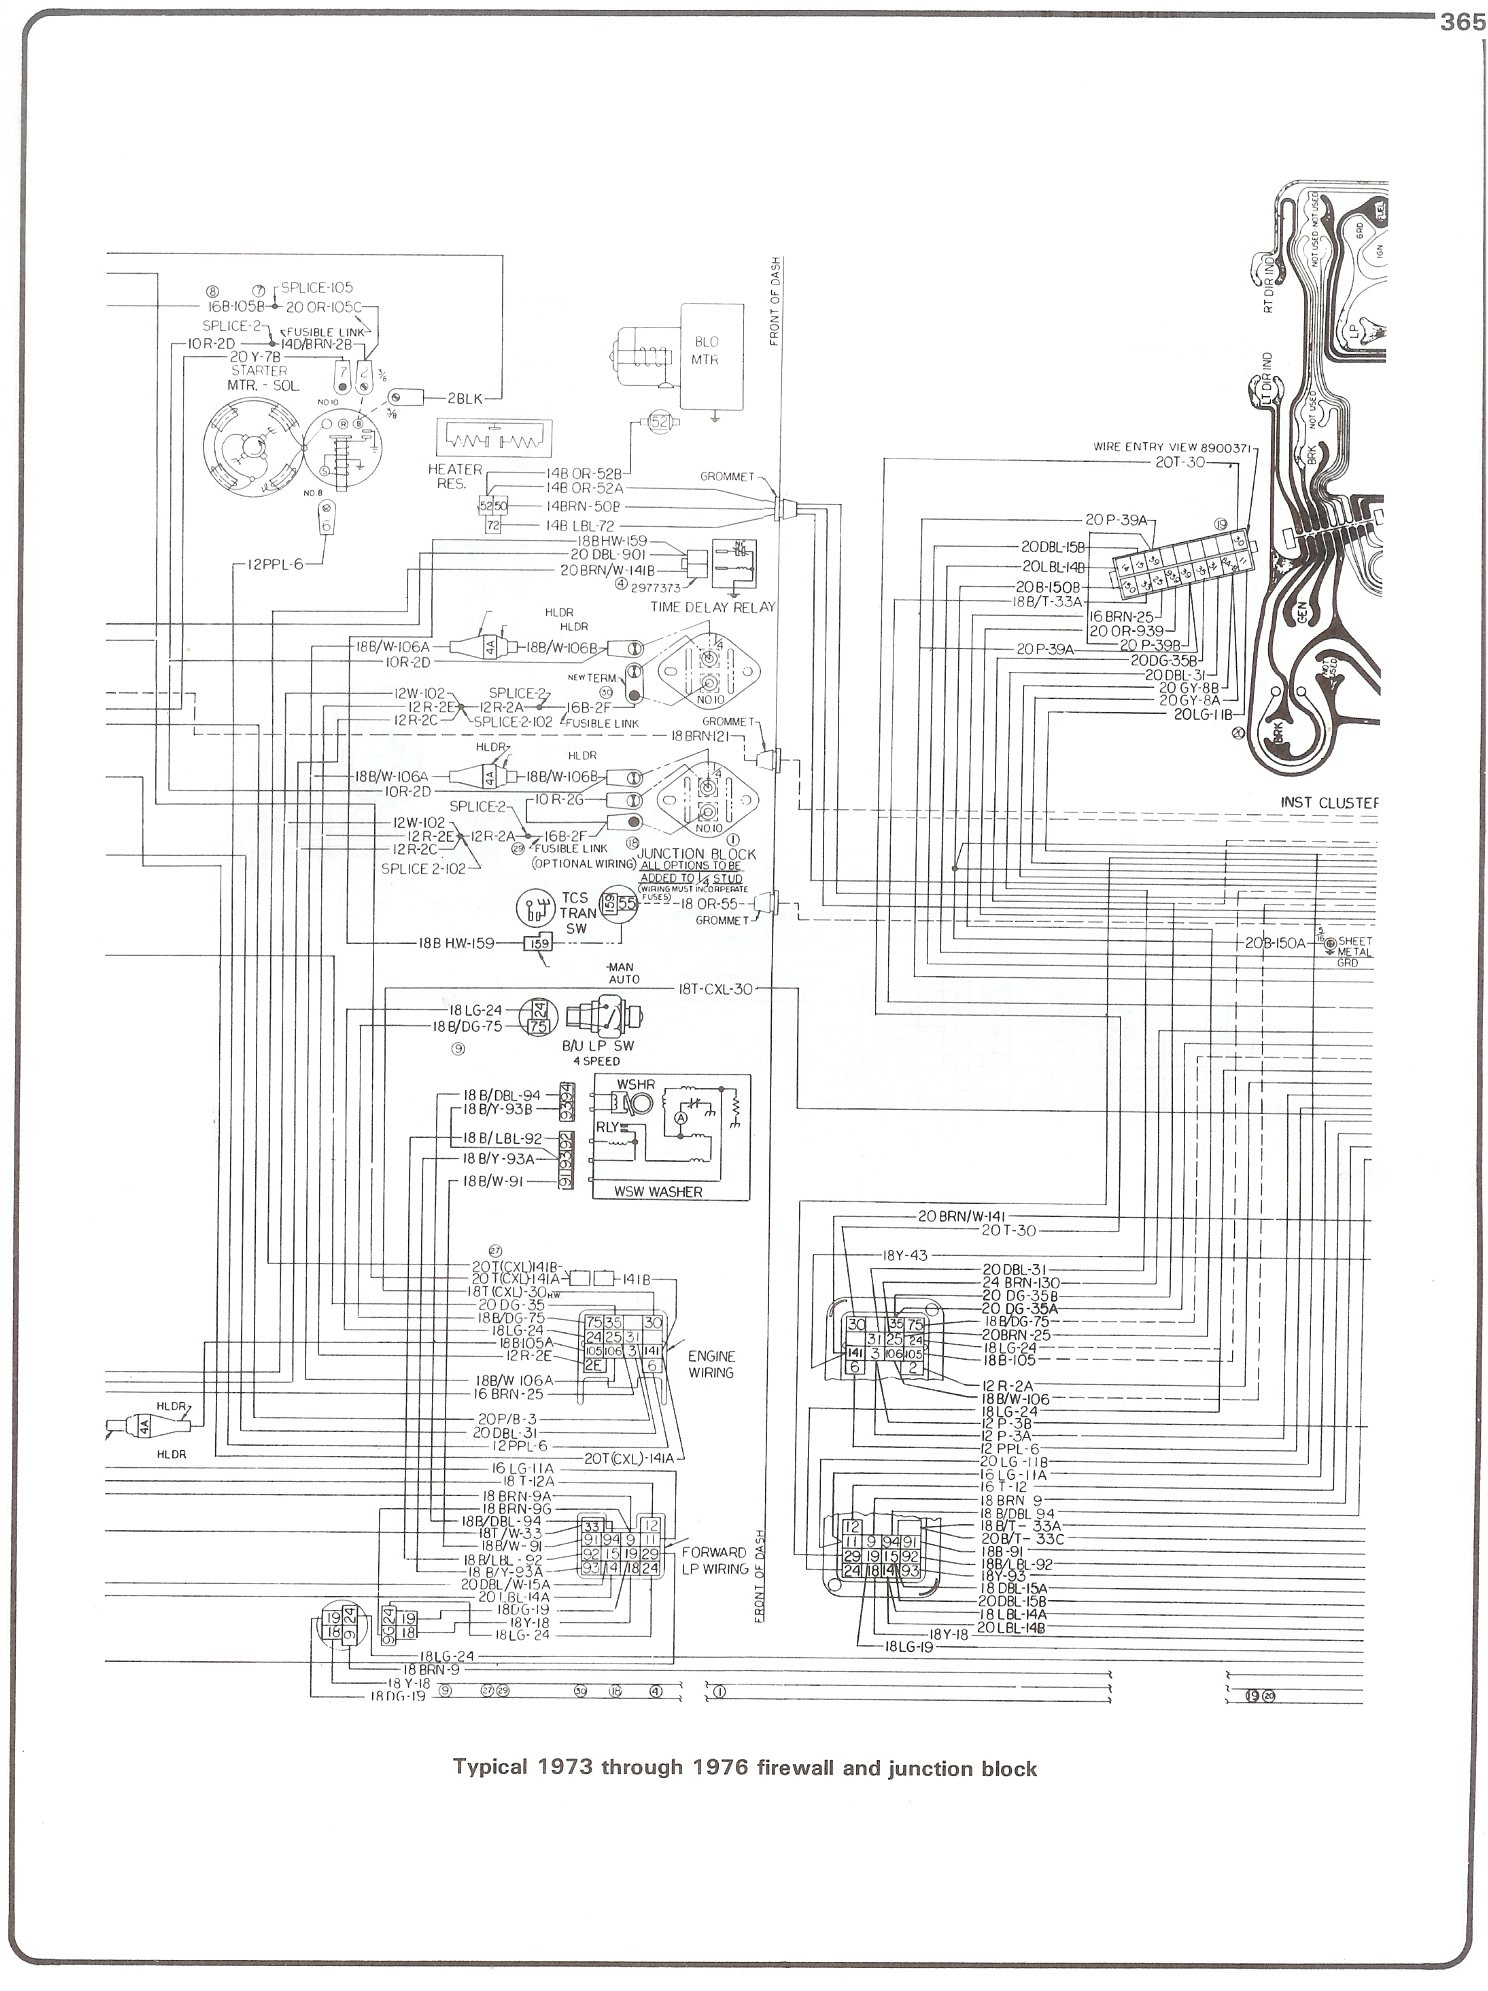 73 76_firewall_junct complete 73 87 wiring diagrams 1984 chevy truck electrical wiring diagram at edmiracle.co